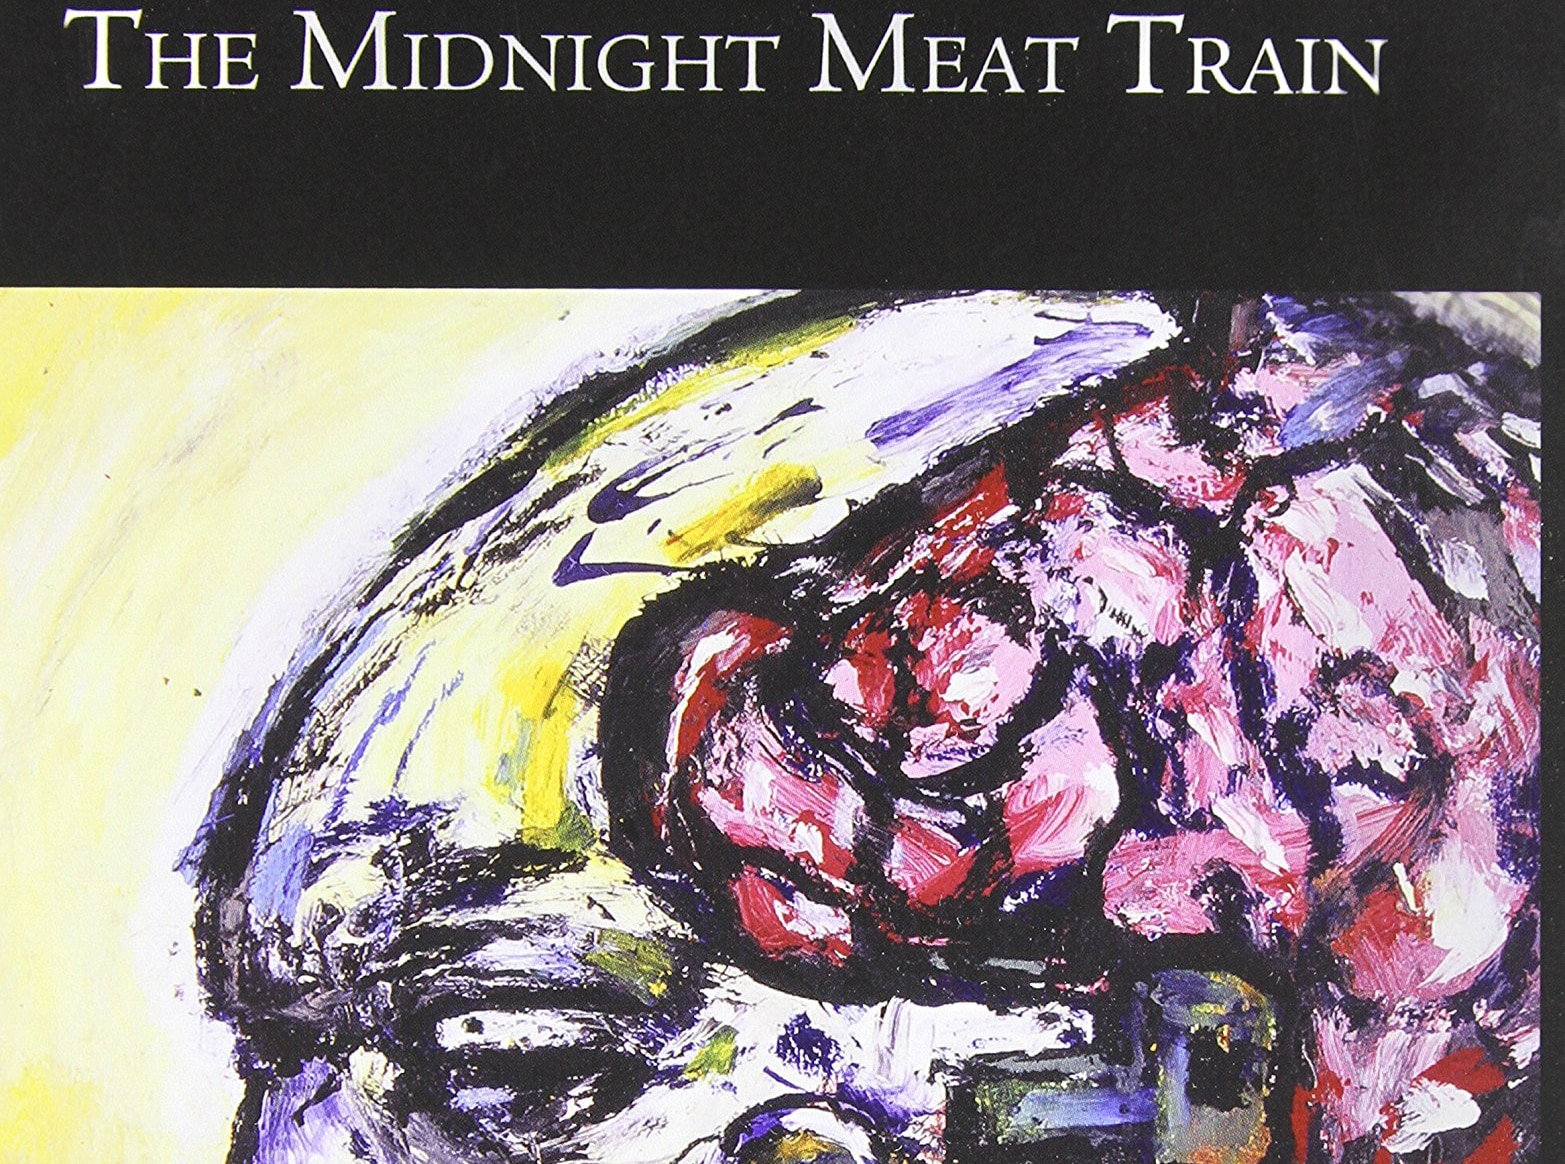 midnightmeattrain - Clive Barker's The Midnight Meat Train: Special Definitive Edition (Book)